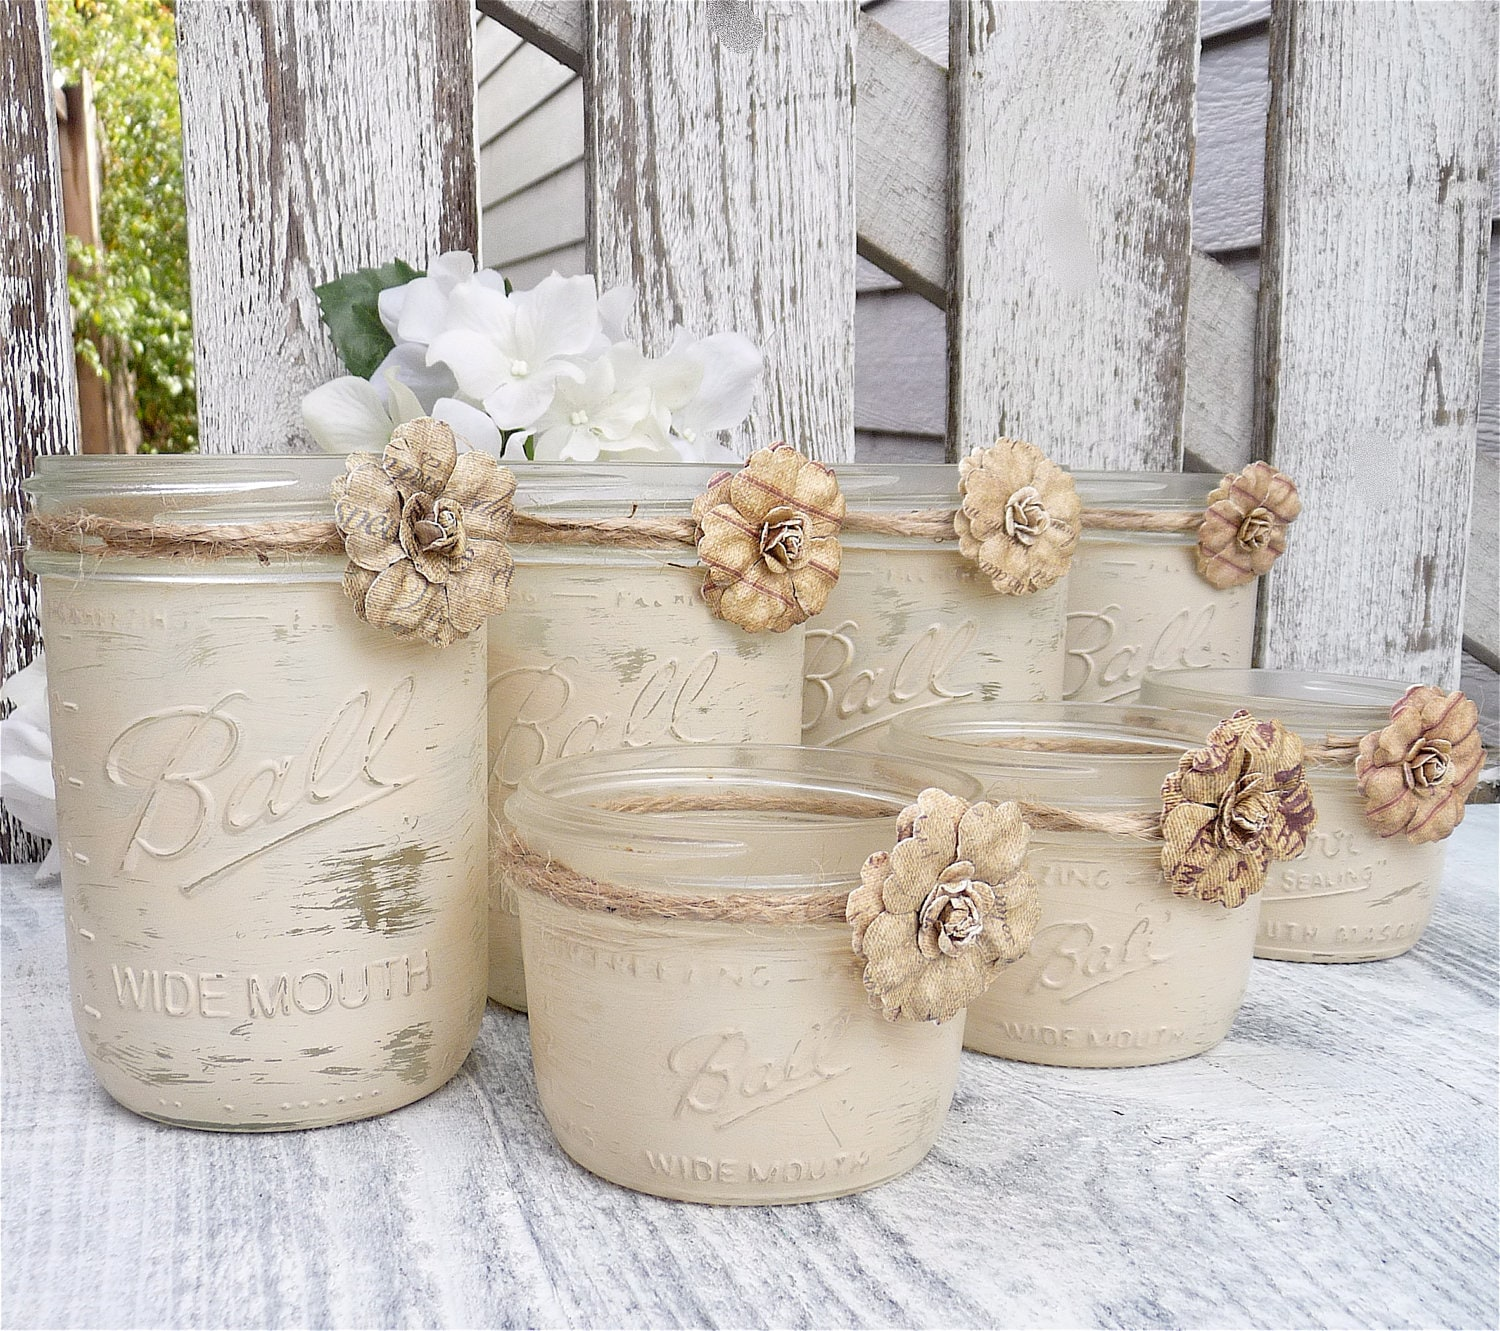 Country Wedding Mason Jars: RUSTIC WEDDING Shabby Chic Upcycled Country By HuckleberryVntg